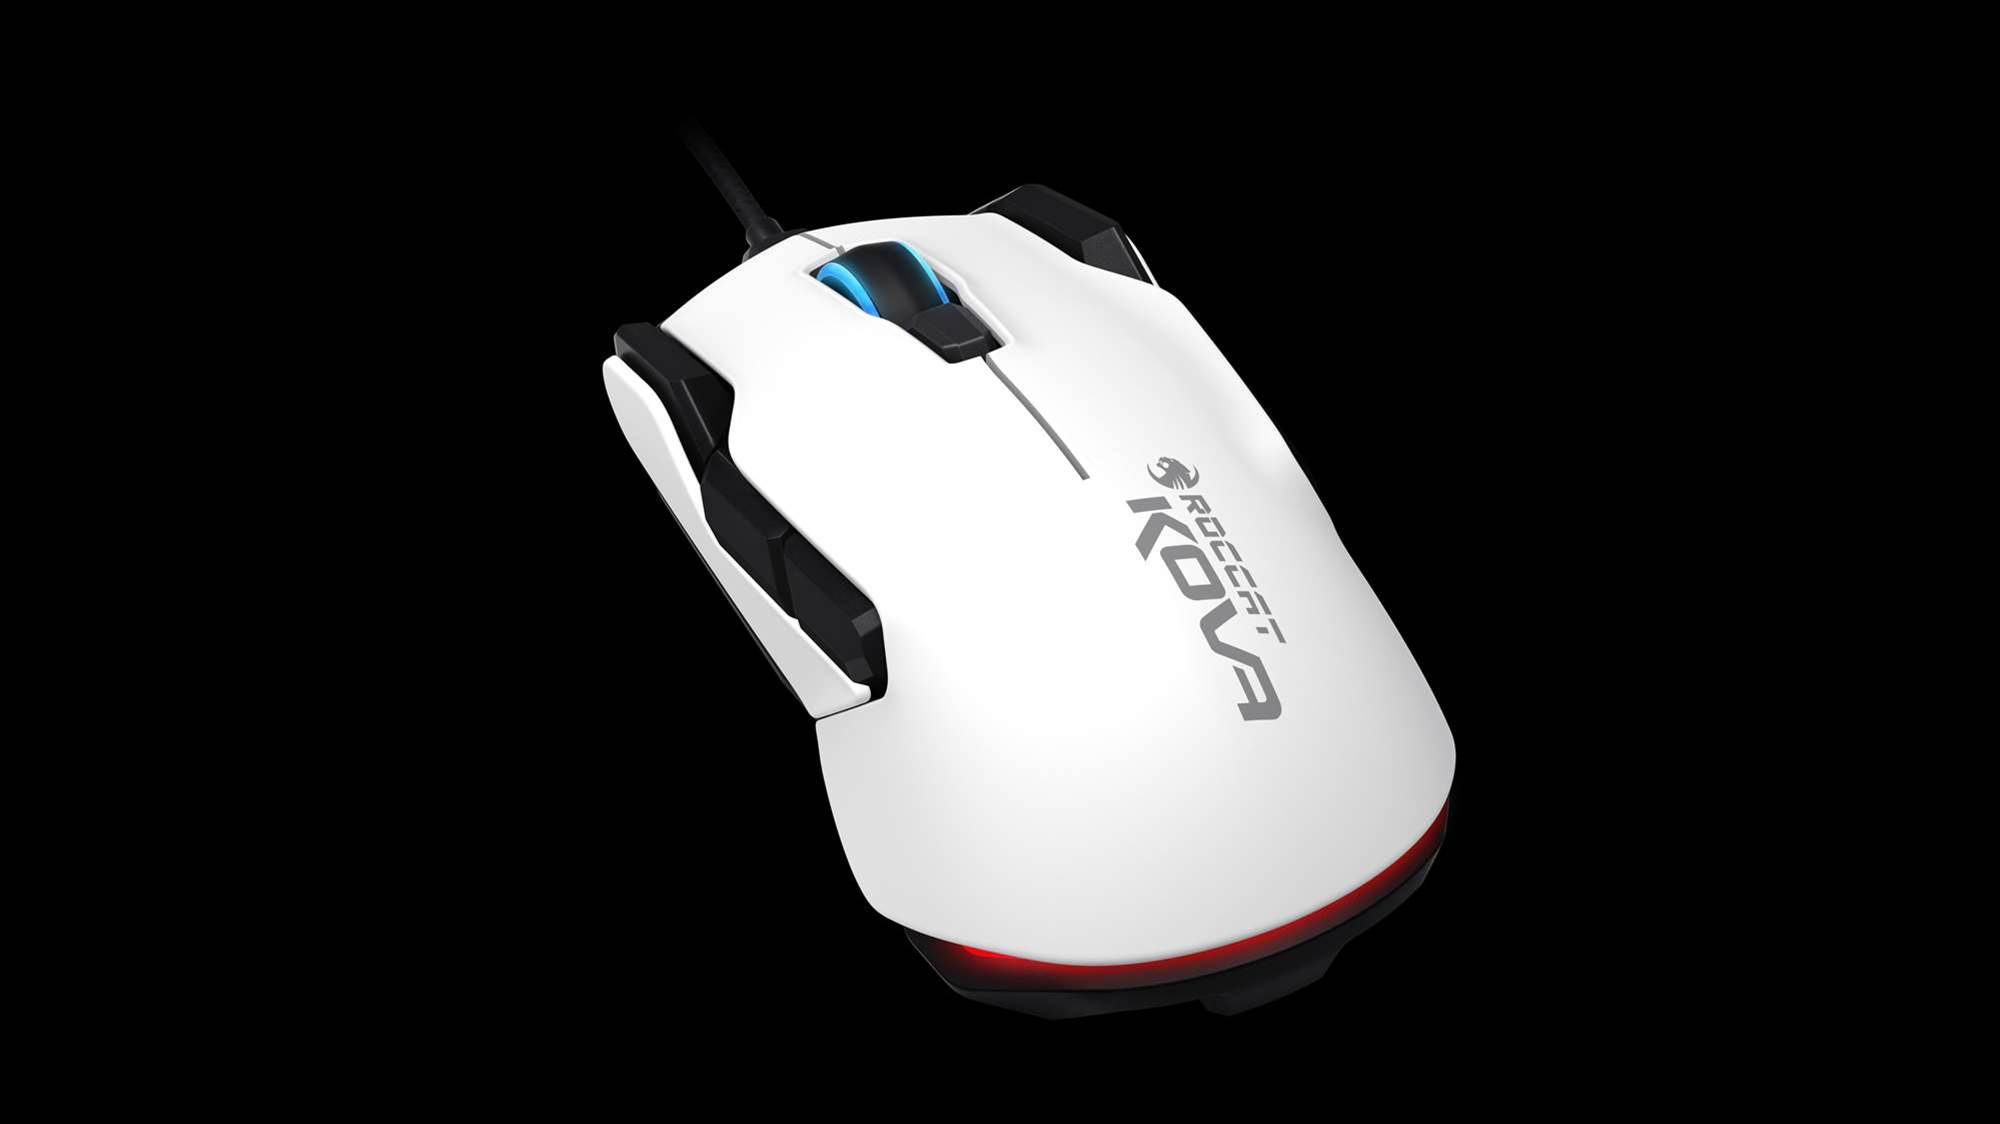 Roccat's new Kova mouse revealed